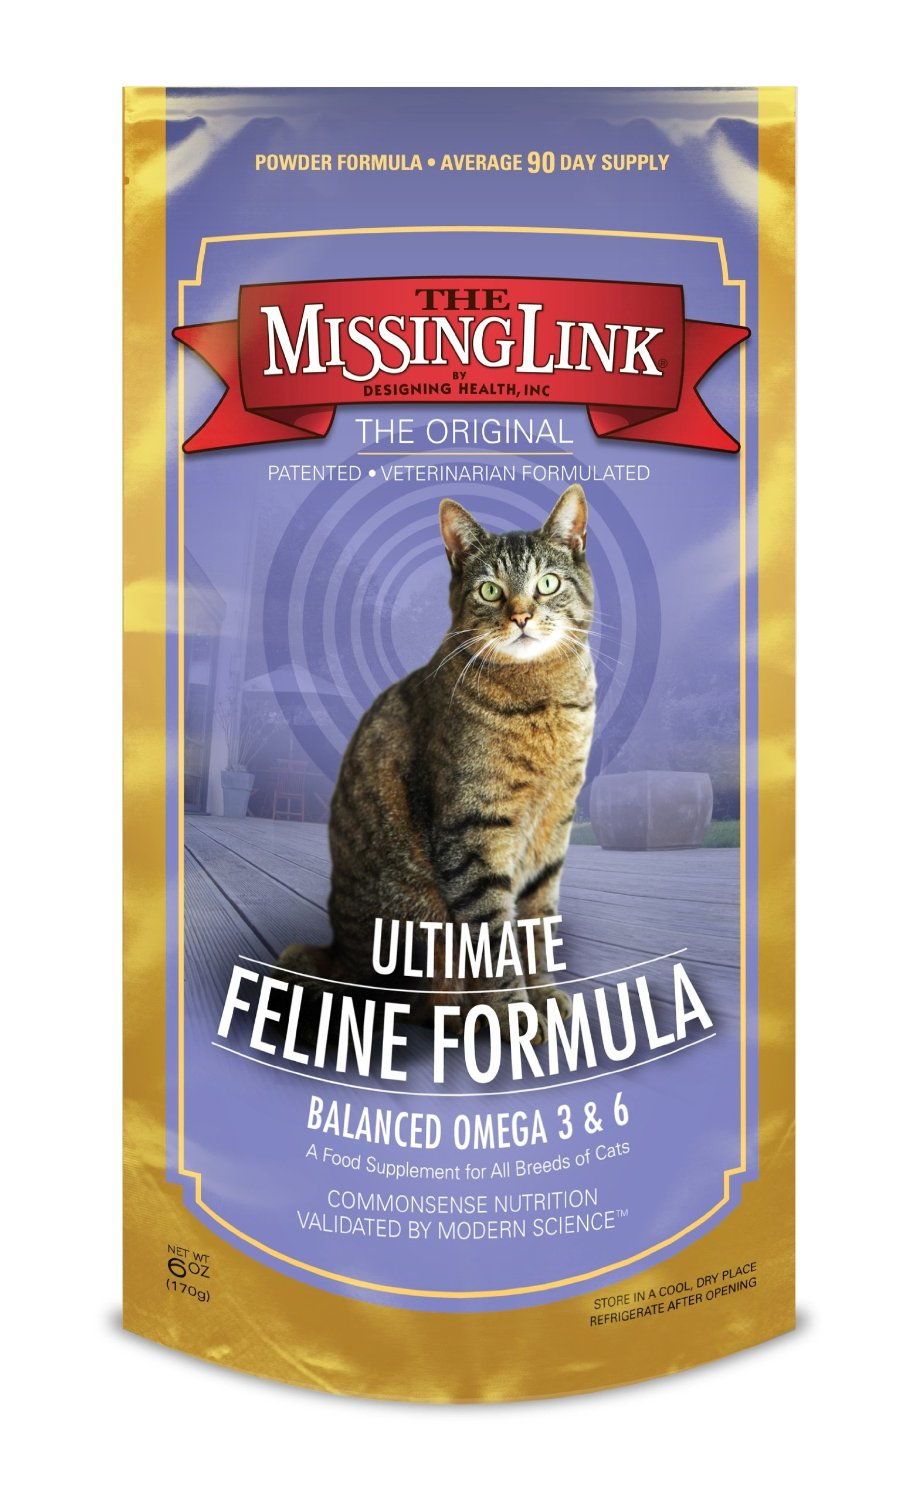 Missing Link Ultimate Feline Formula for Cats